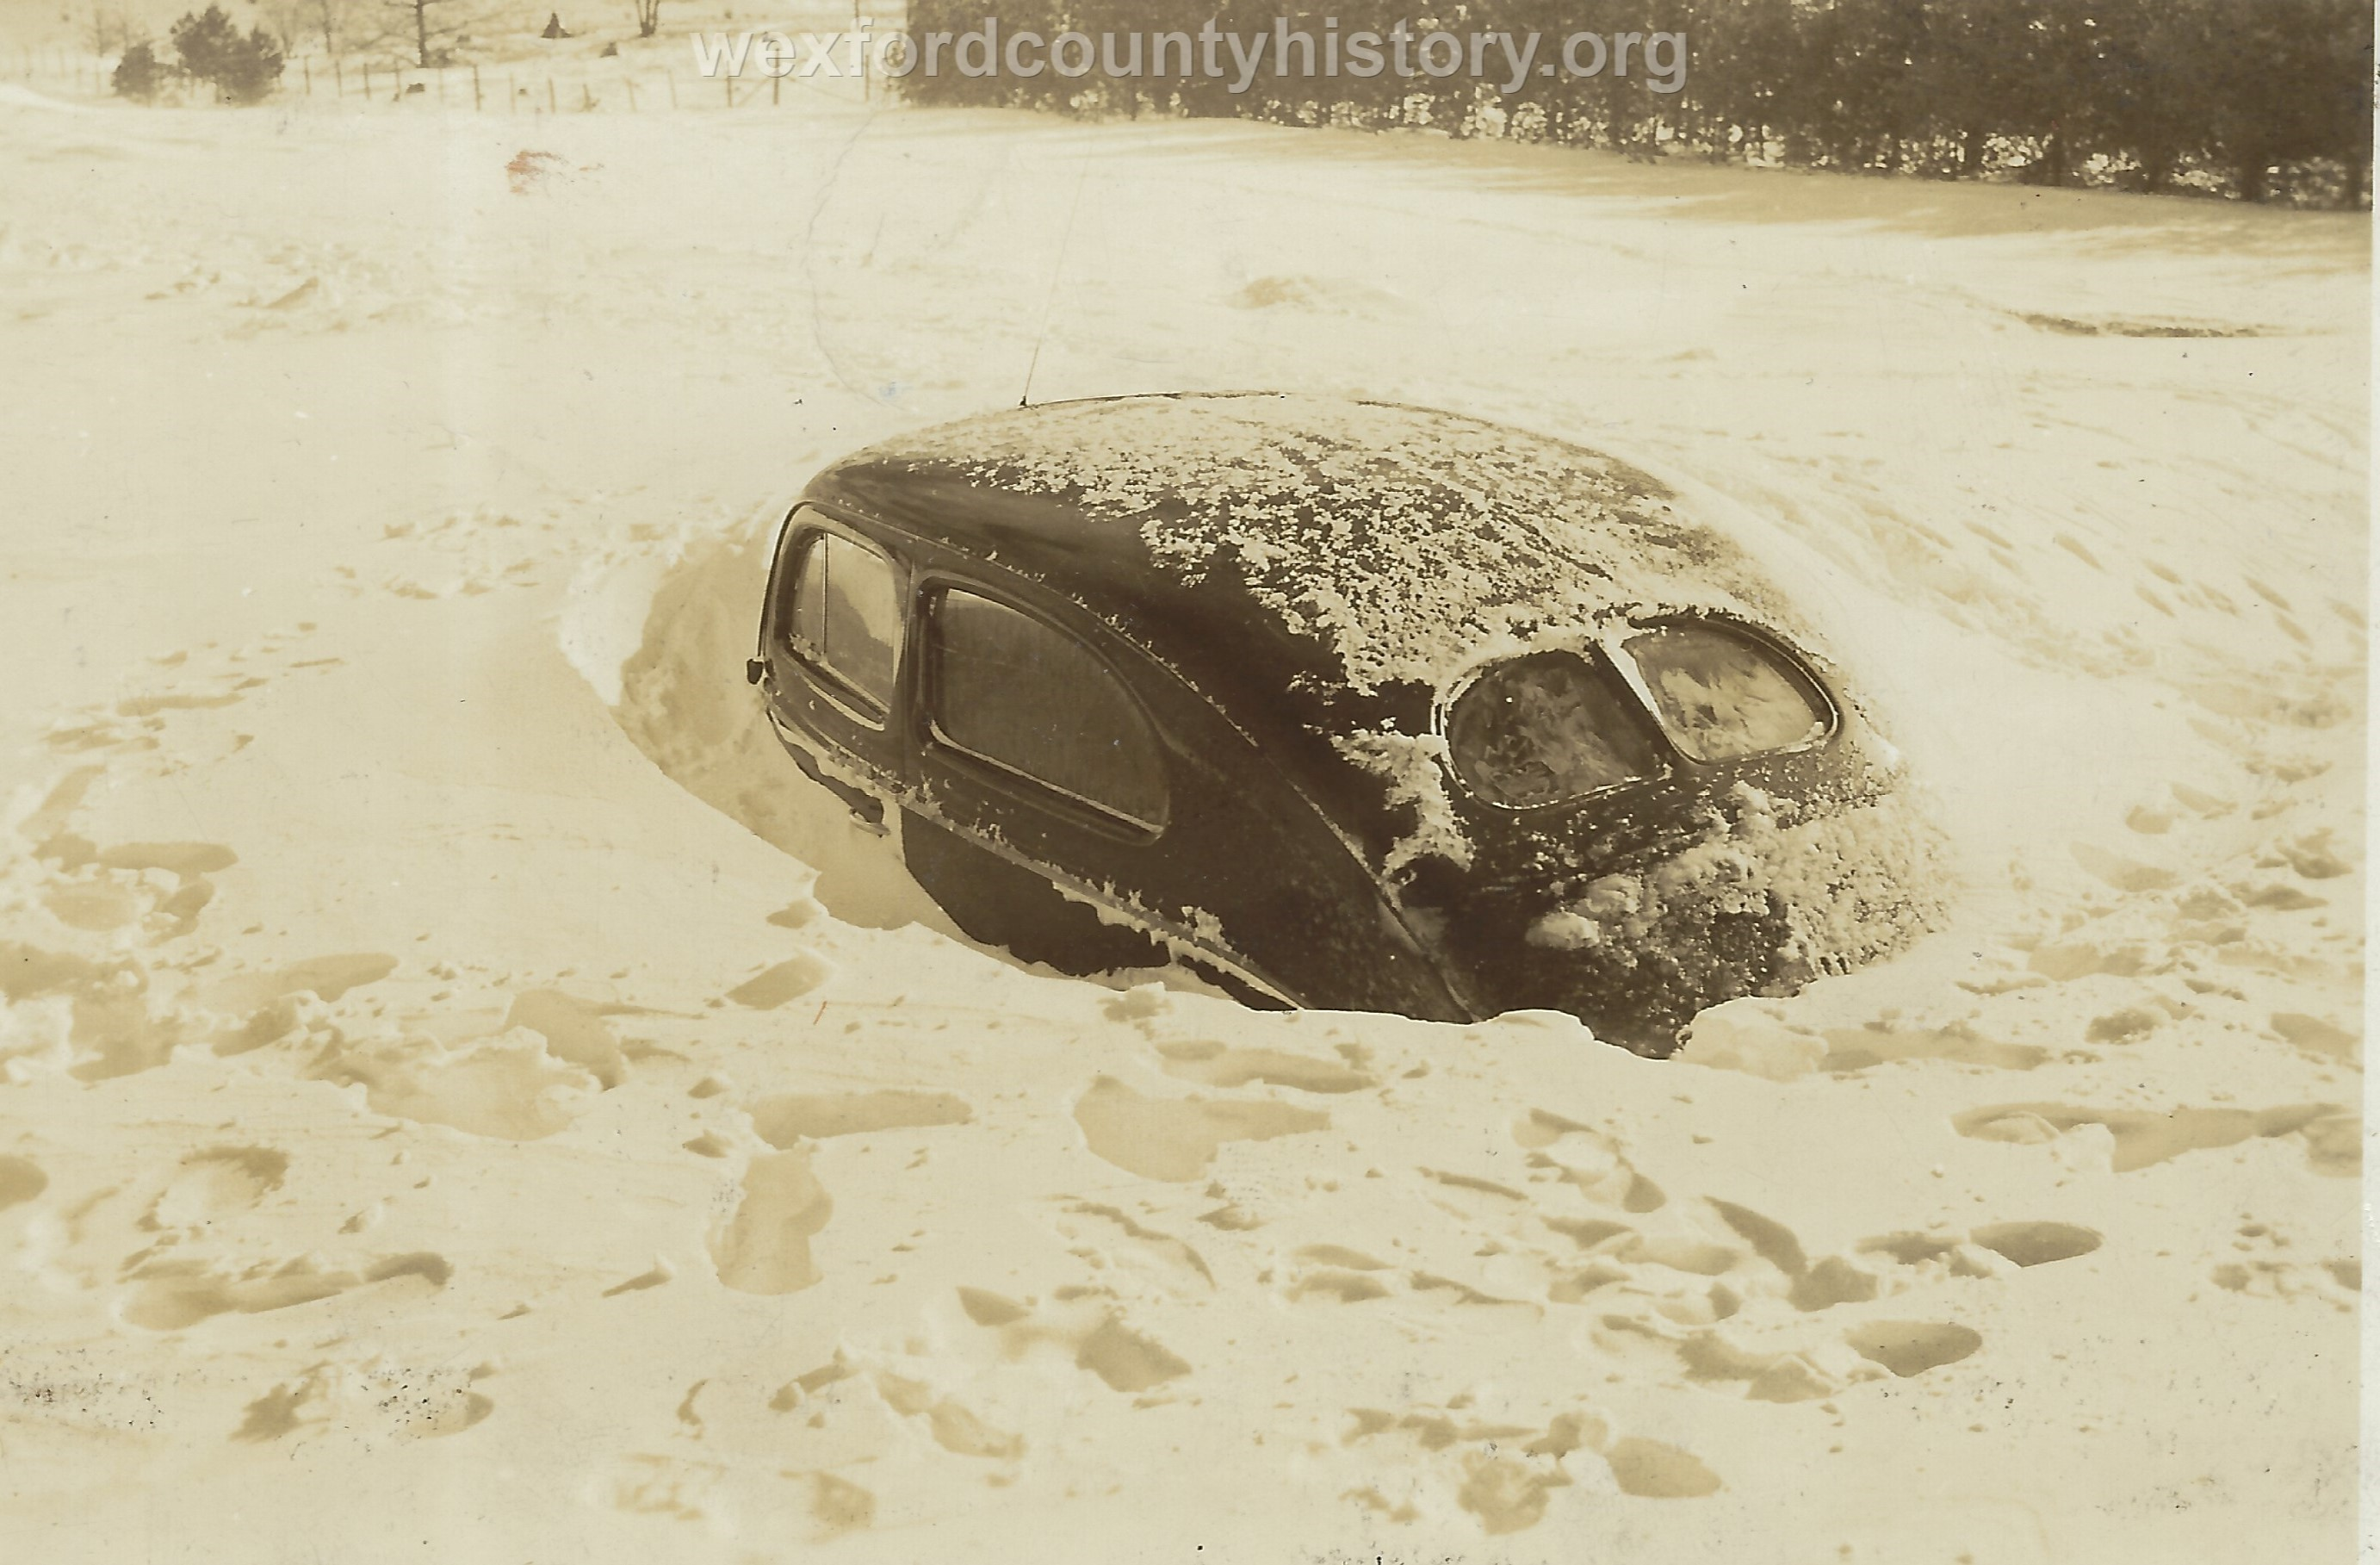 Cadillac-Weather-Car-Buried-In-Snow